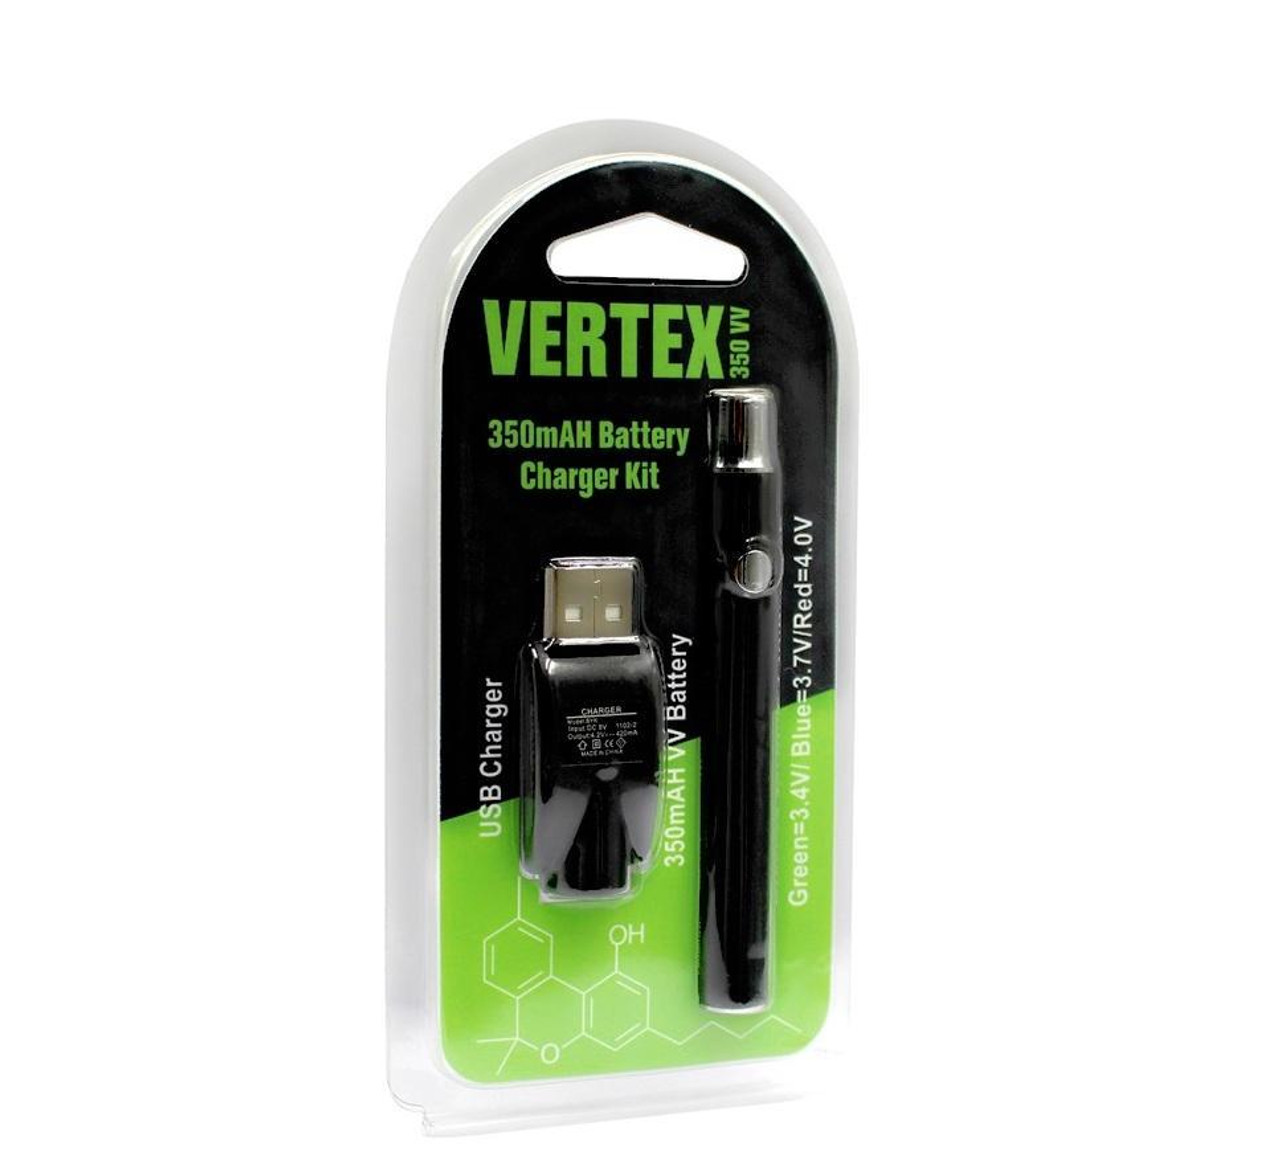 Vertex 350mAH Battery w/ Charger Kit